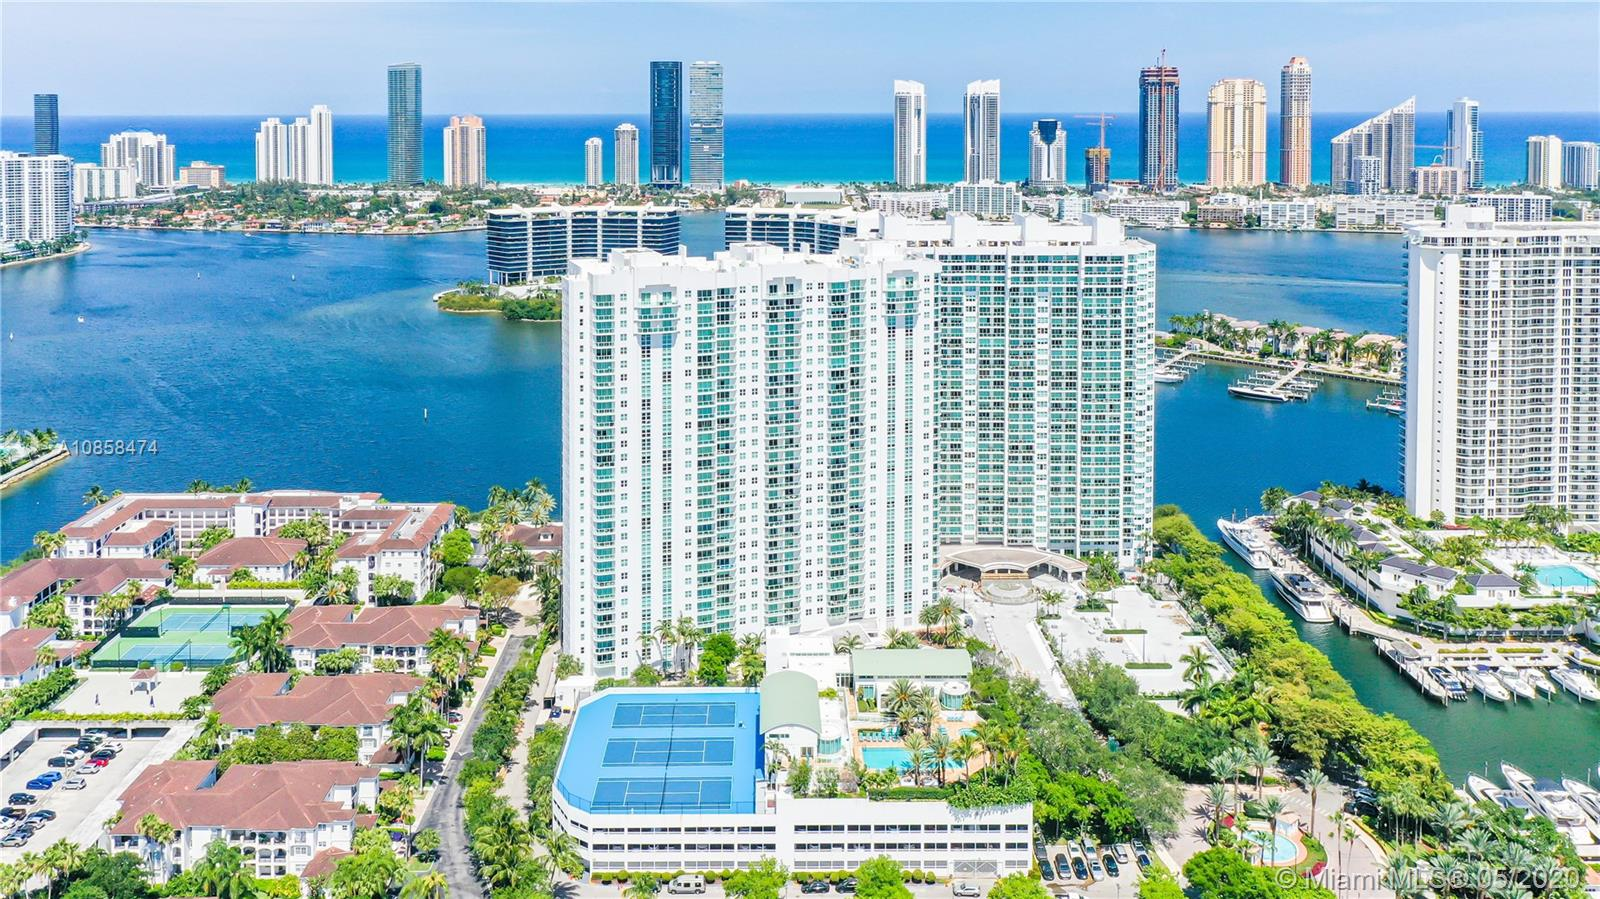 3301 NE 183rd St #2405 For Sale A10858474, FL